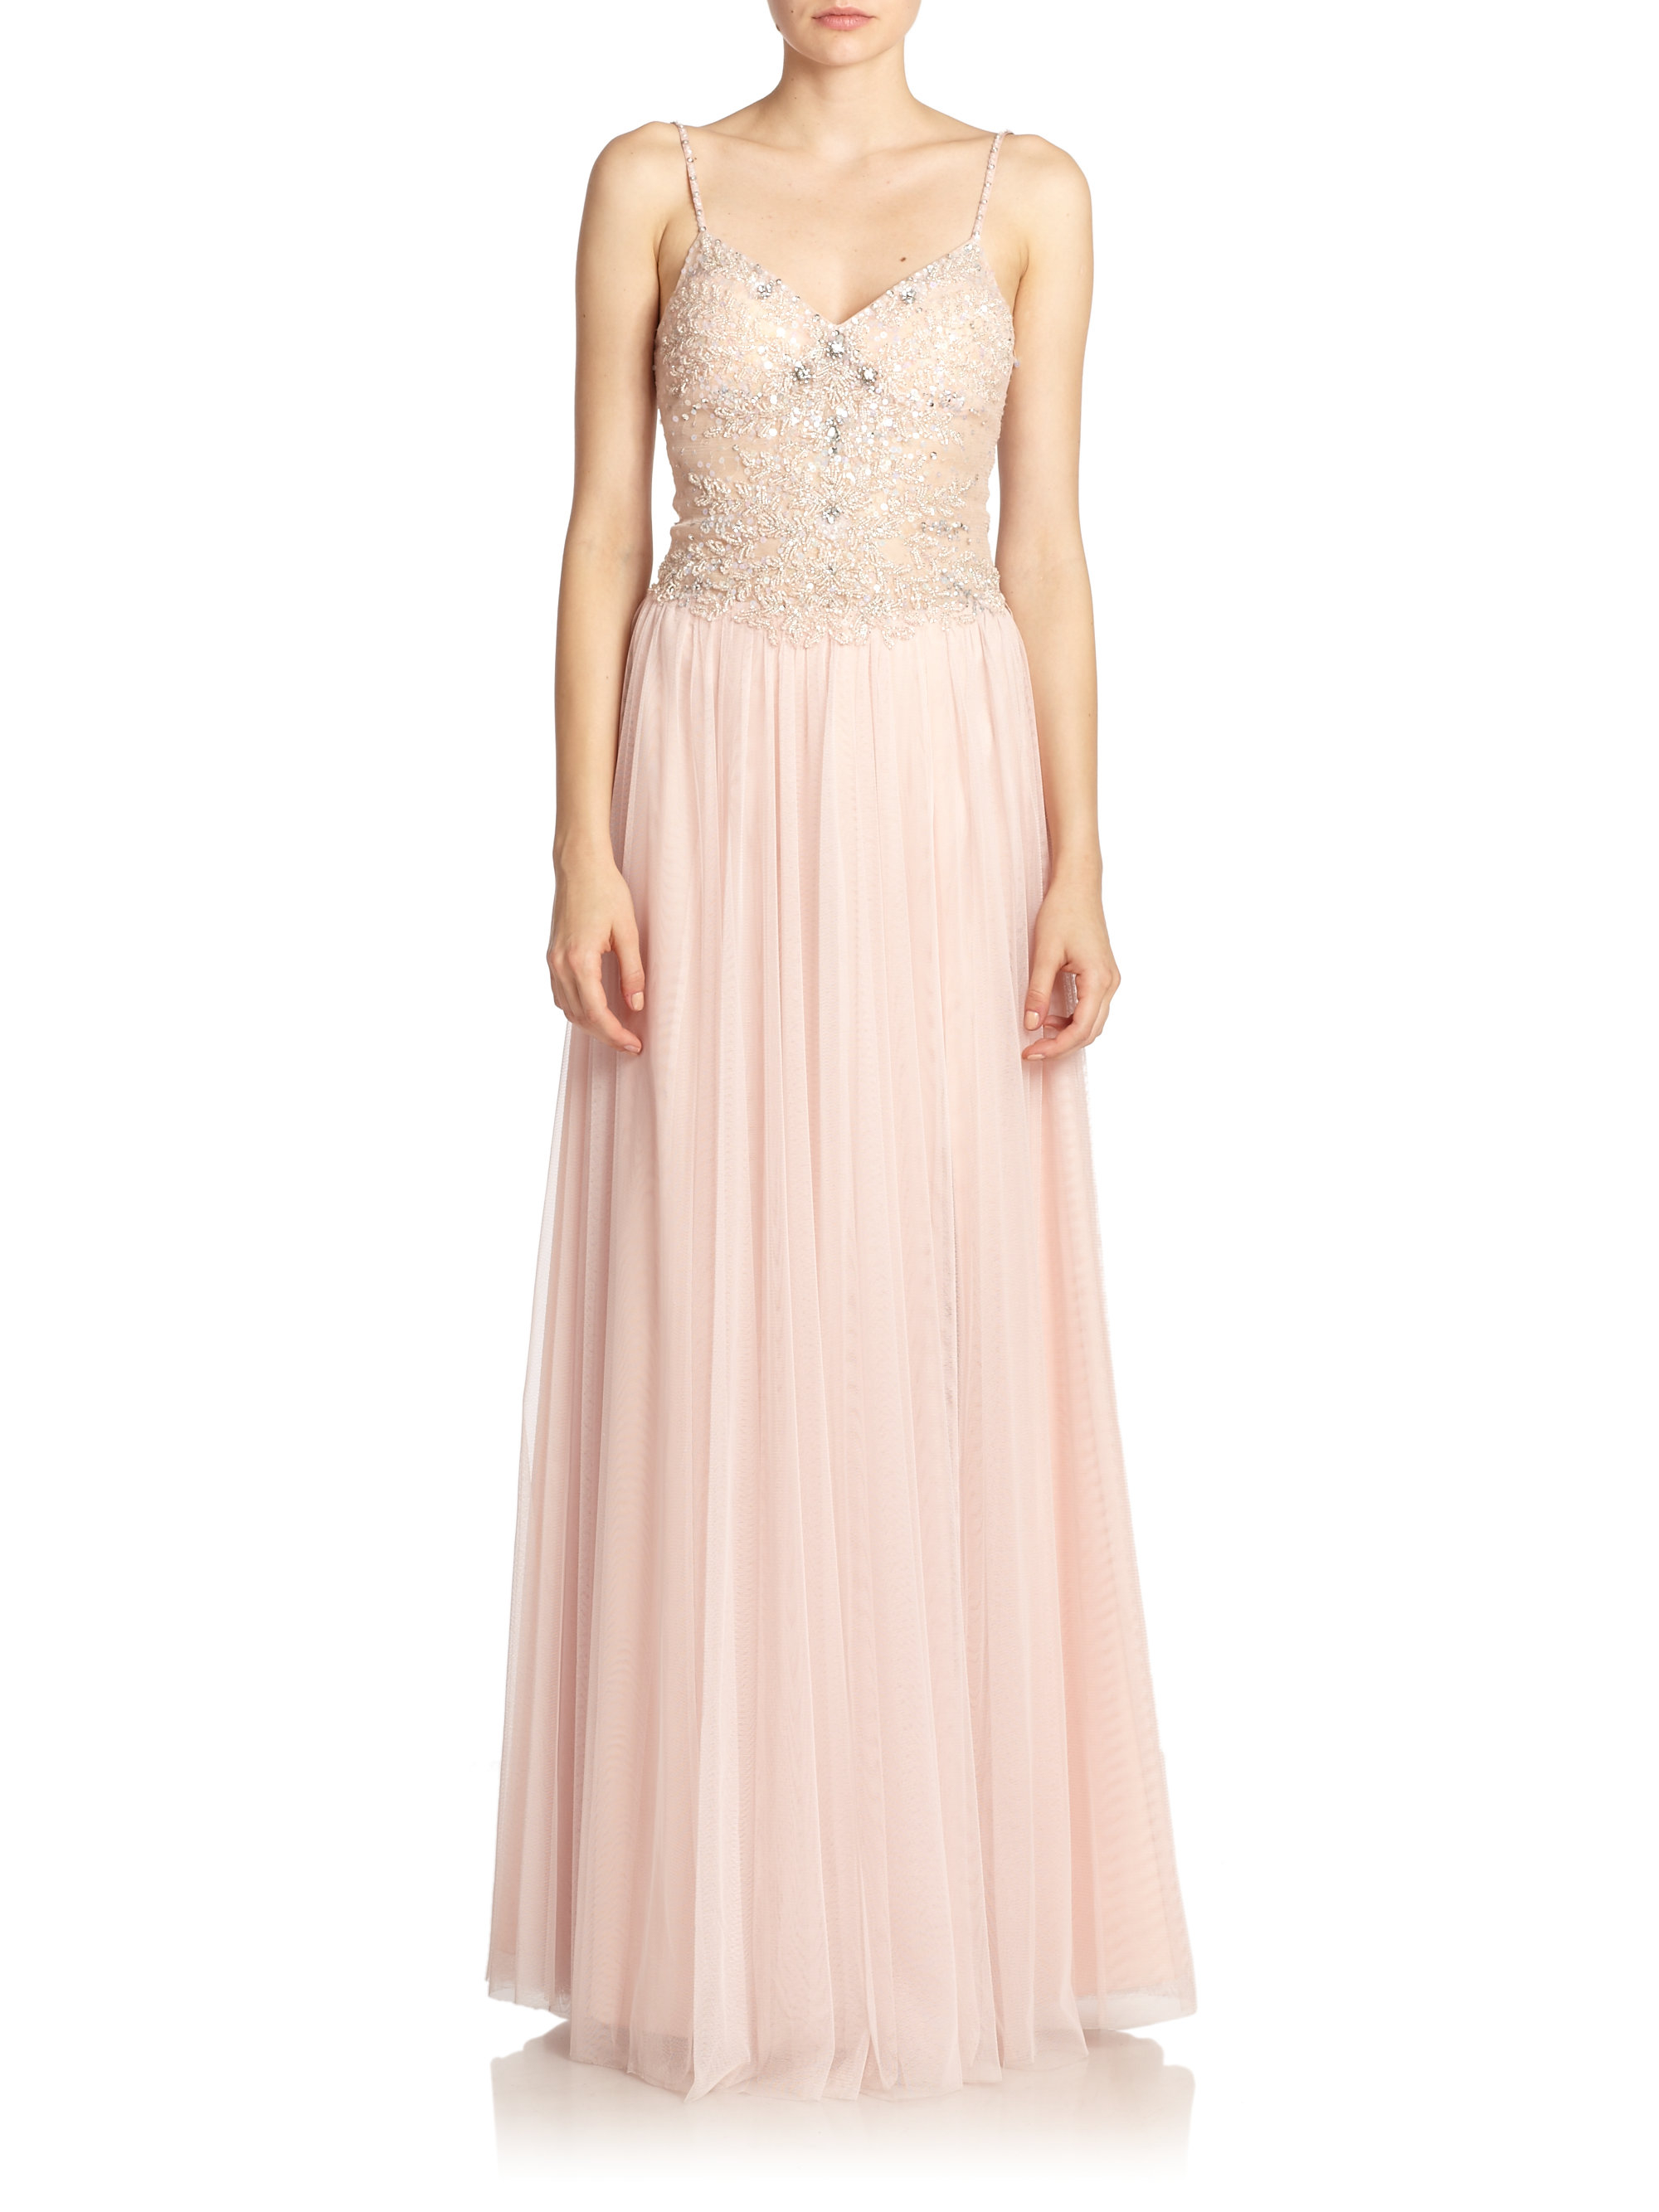 8ae253f7752 Basix Black Label Beaded Lace-top Gown in Pink - Lyst